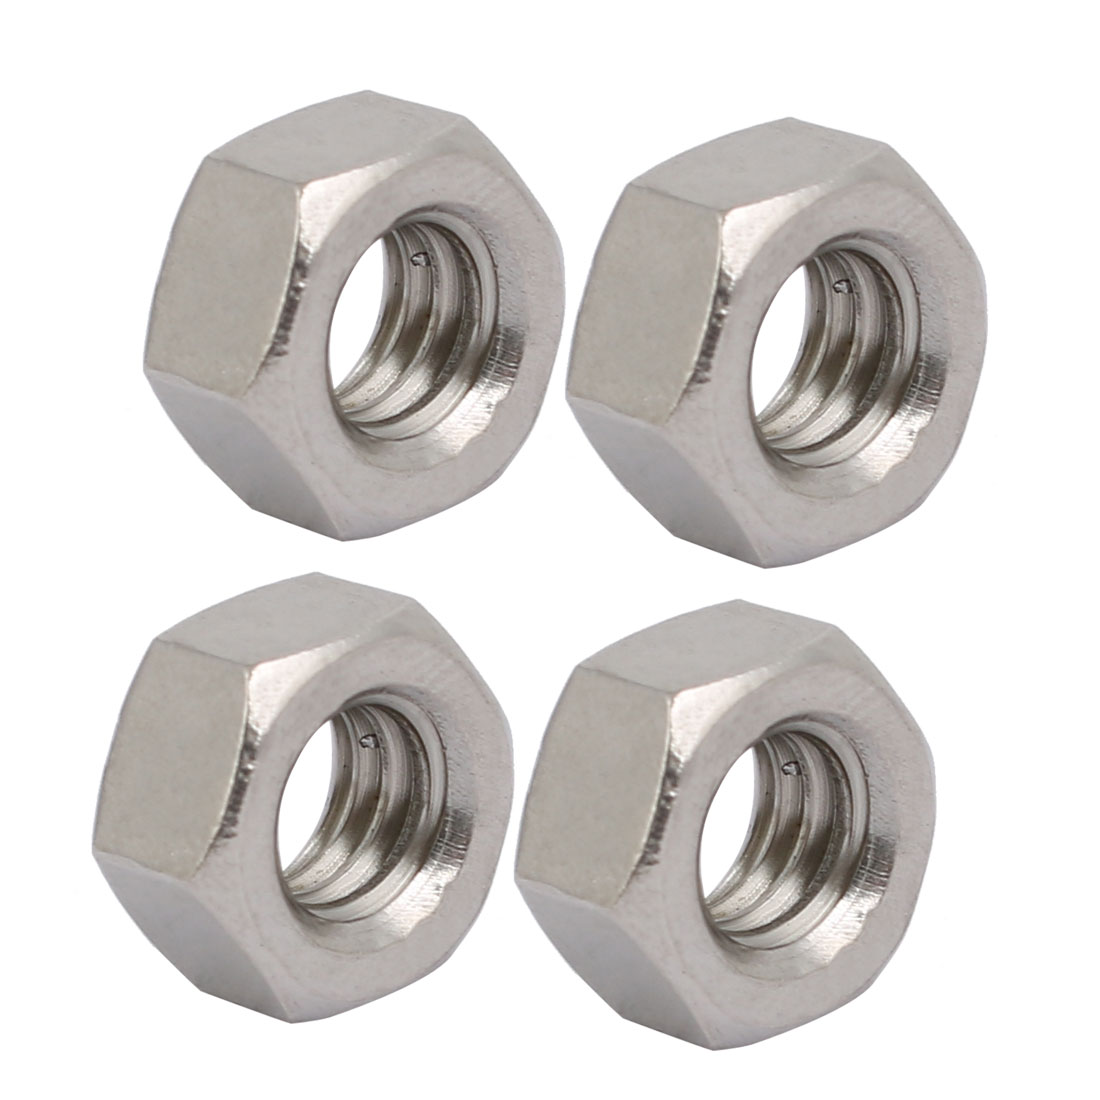 "4pcs 5/16""-18 Thread UNC Type 304 Stainless Steel Hex Nut Fastener Silver Tone"